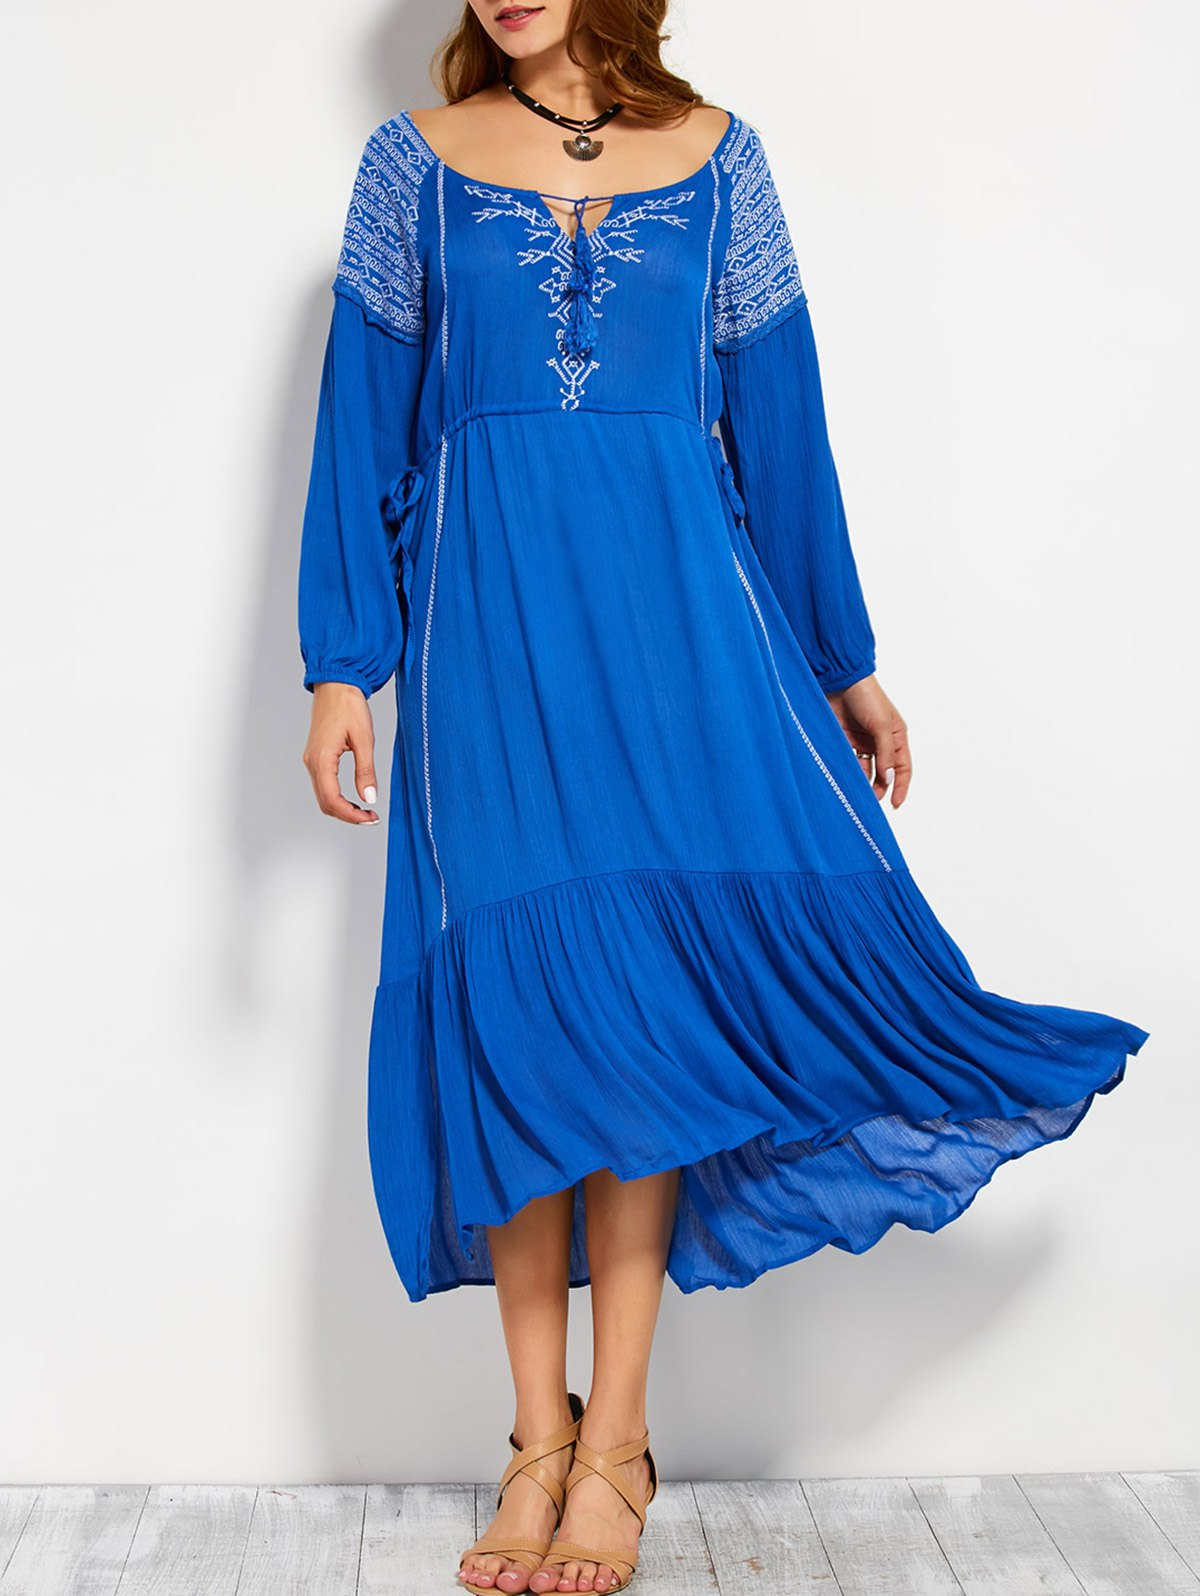 Scoop Neck Drawstring Embroidered Dress